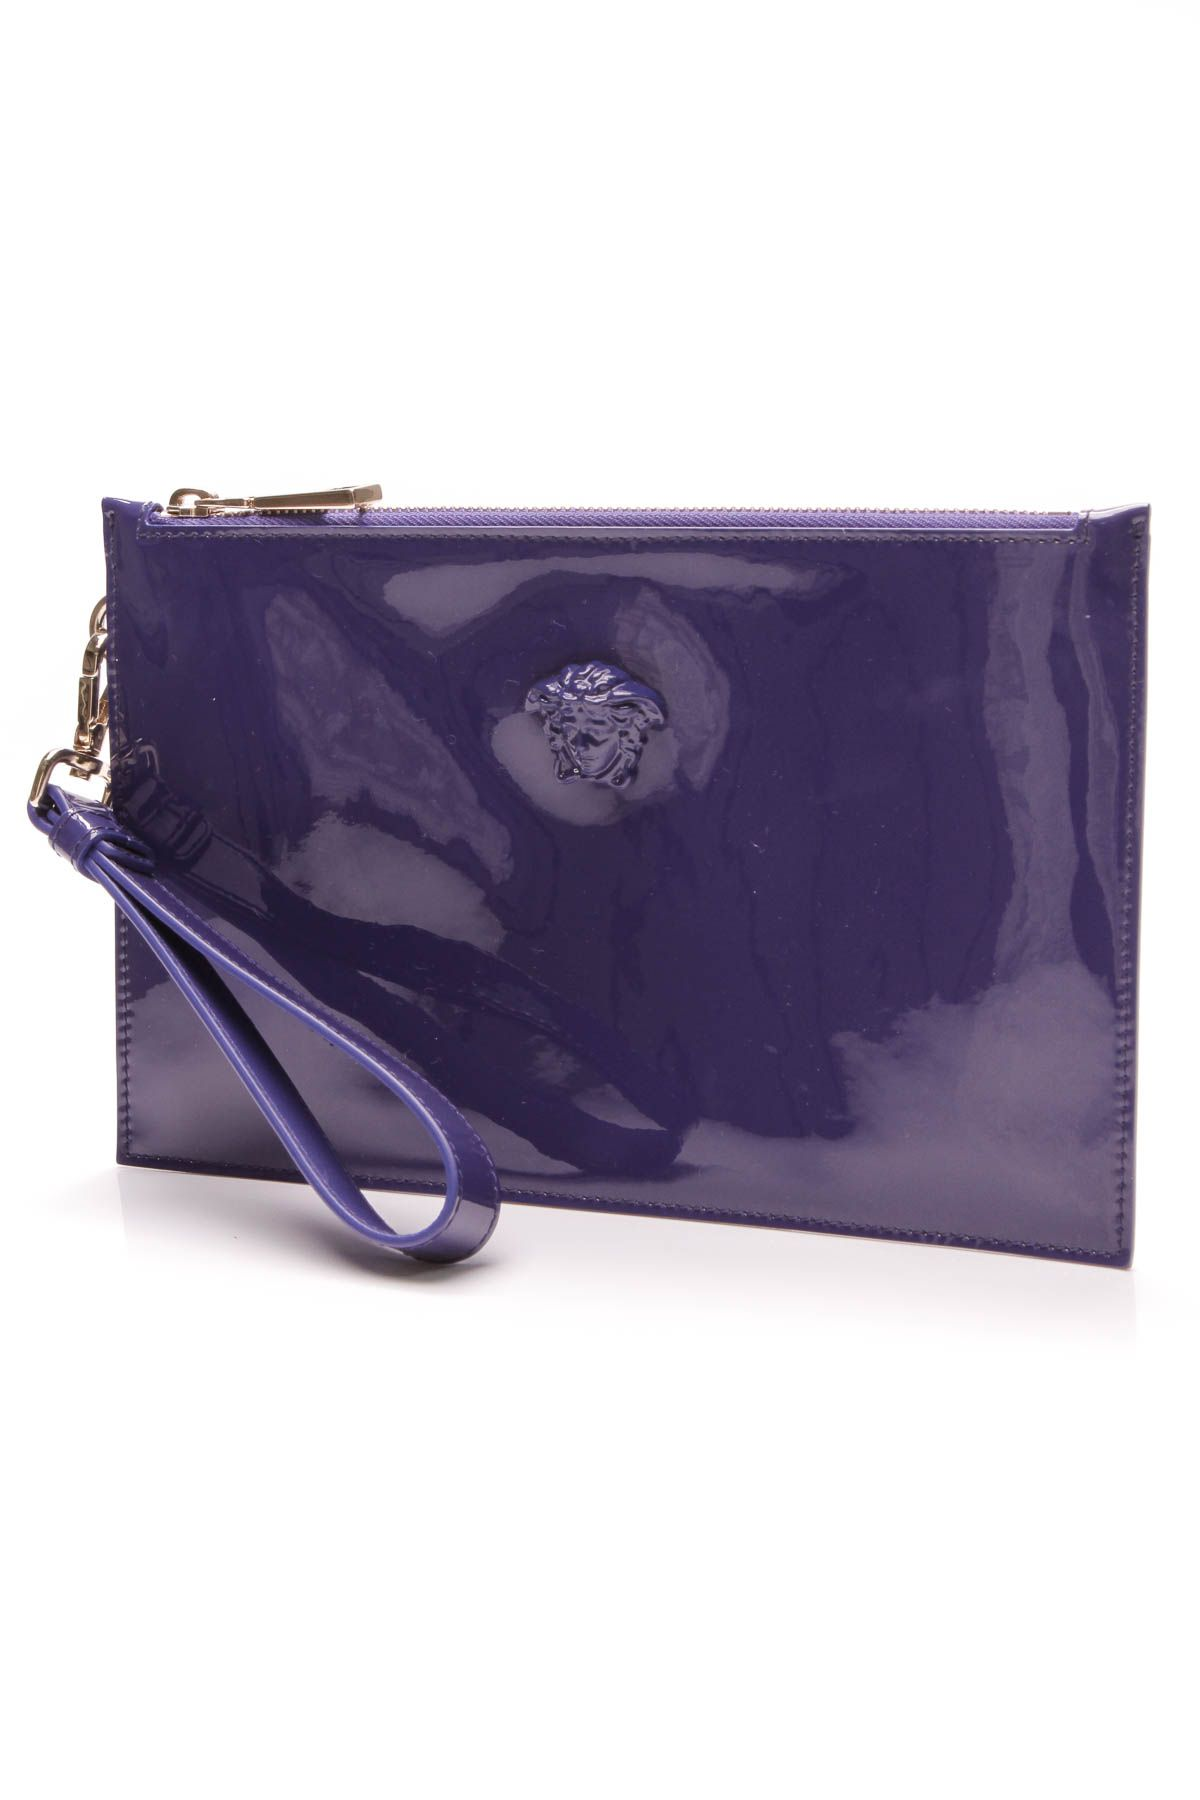 bfdfedba2e47 Medusa Wristlet Clutch - Blue Patent Leather in 2019 | In The Bag ...